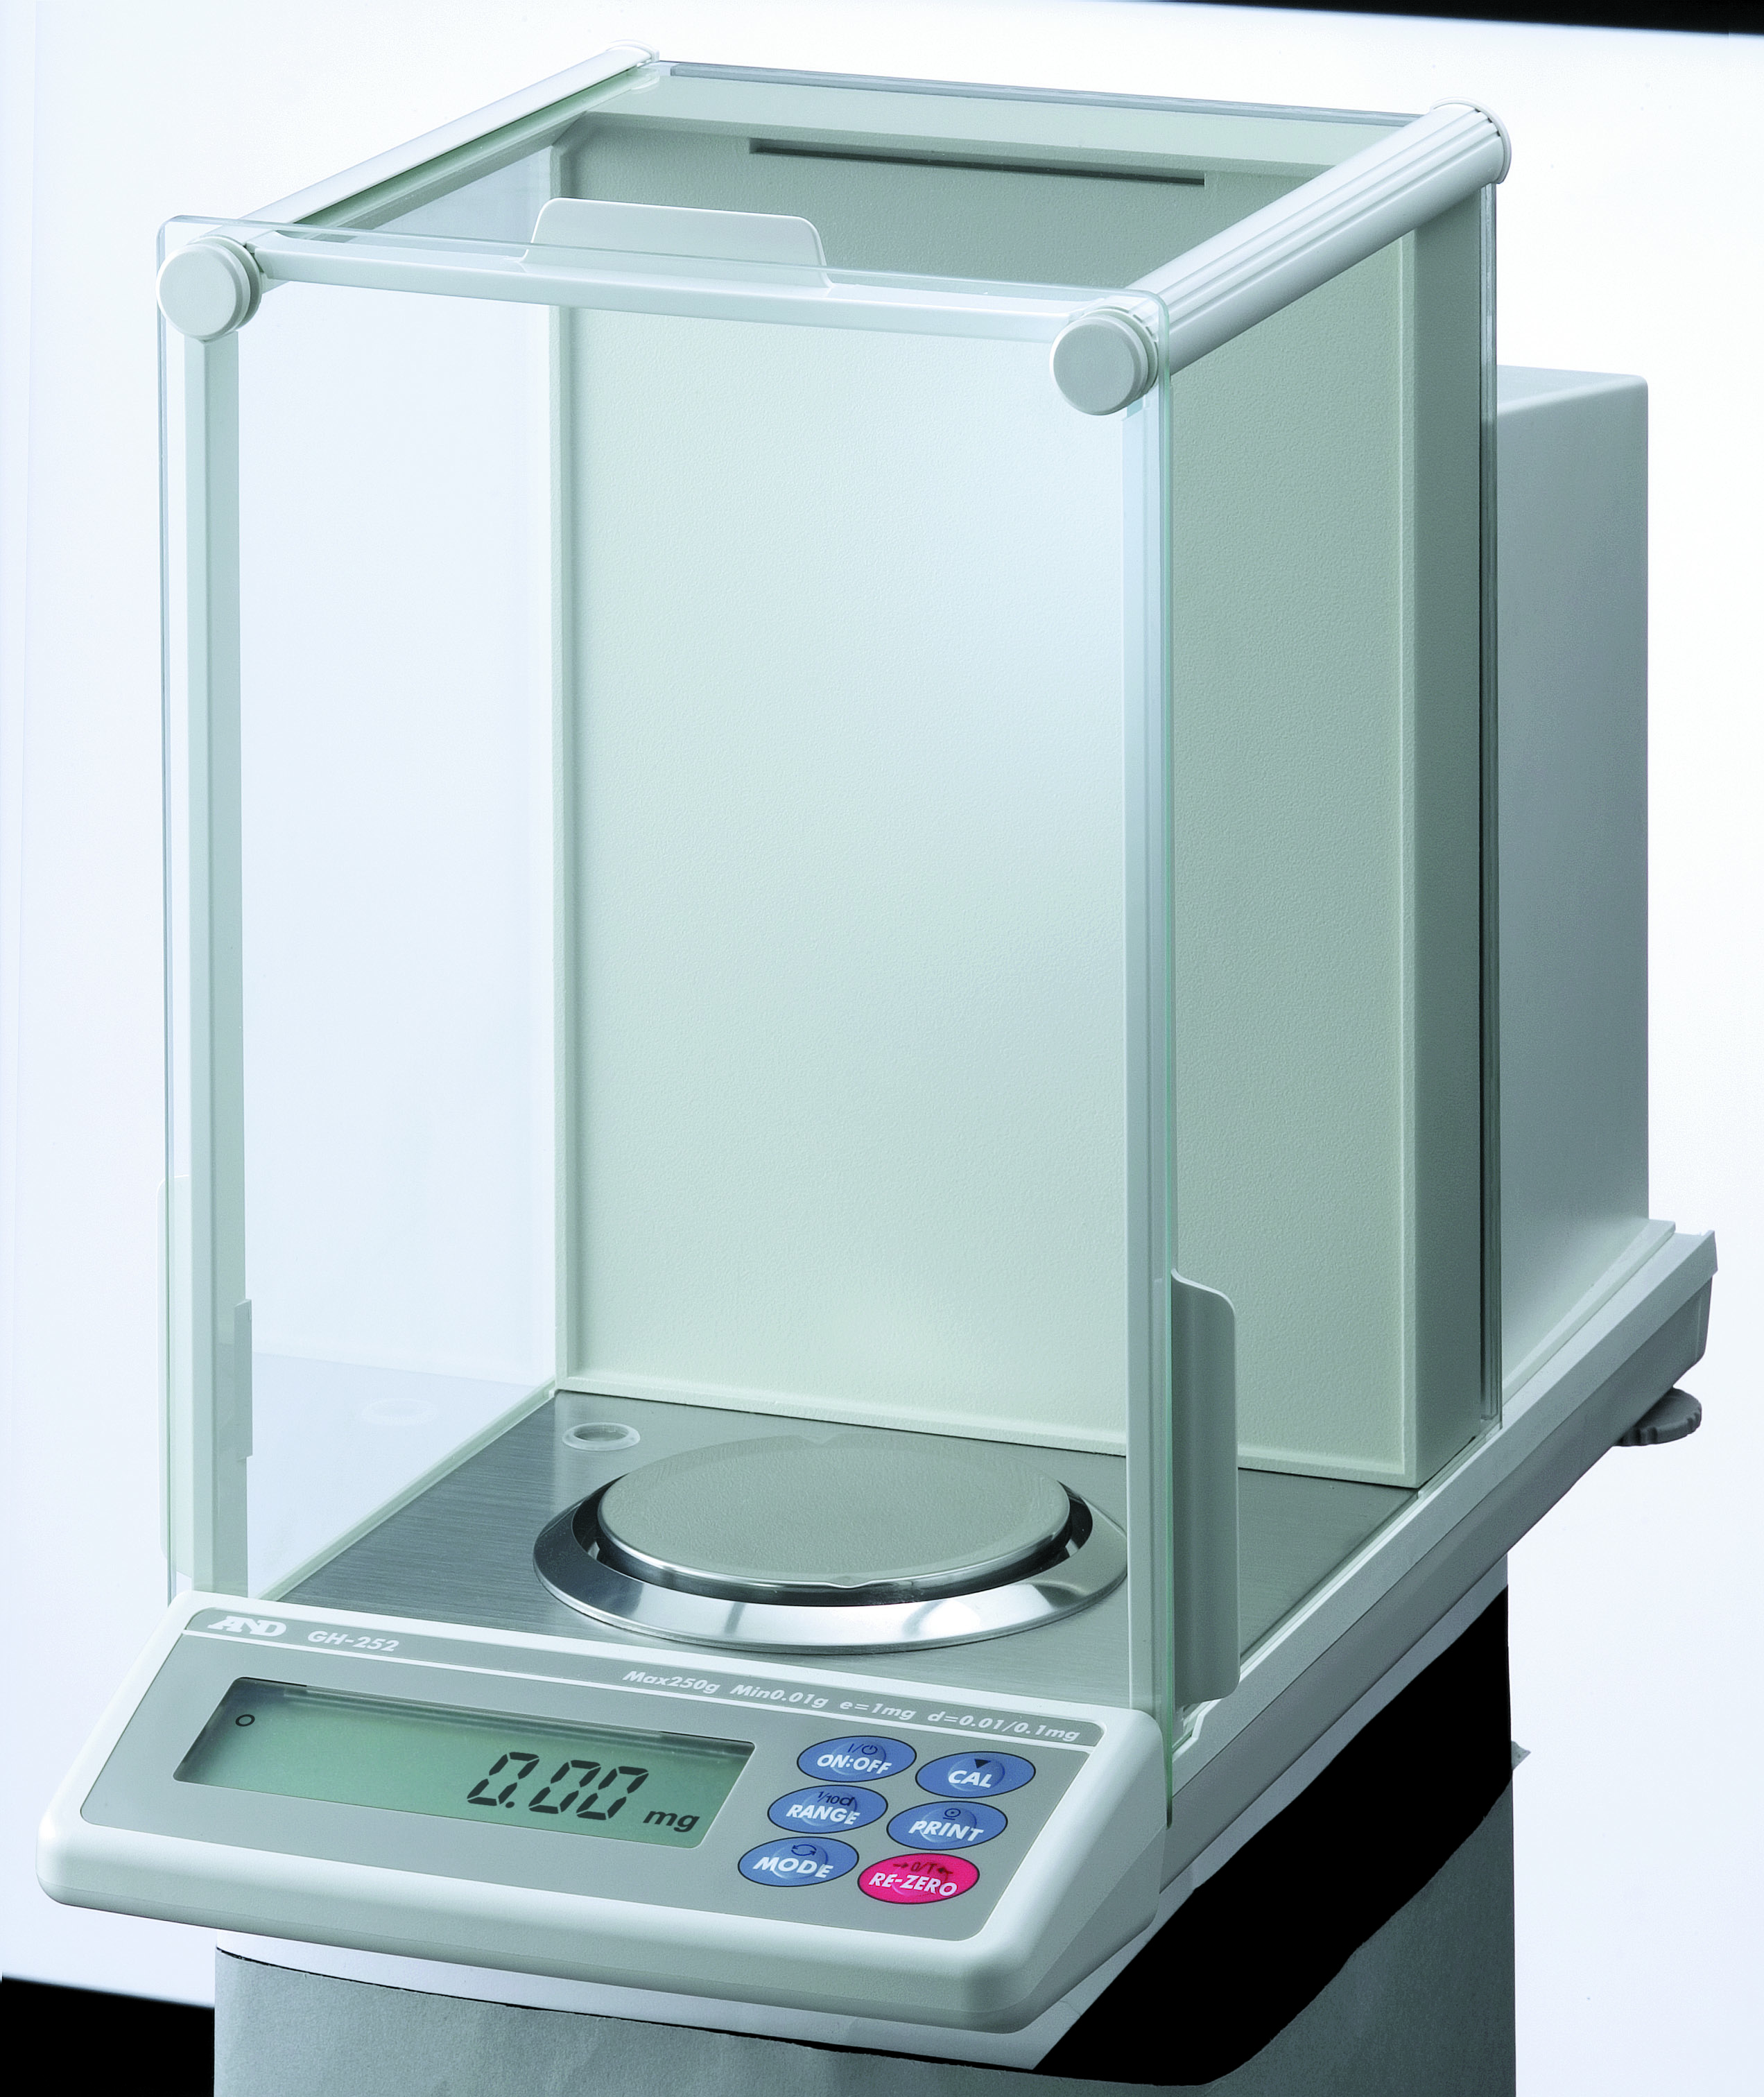 A&D GH SERIES ANALYTICAL BALANCE ULTRA HIGH PRECISION WITH EC APPROVAL